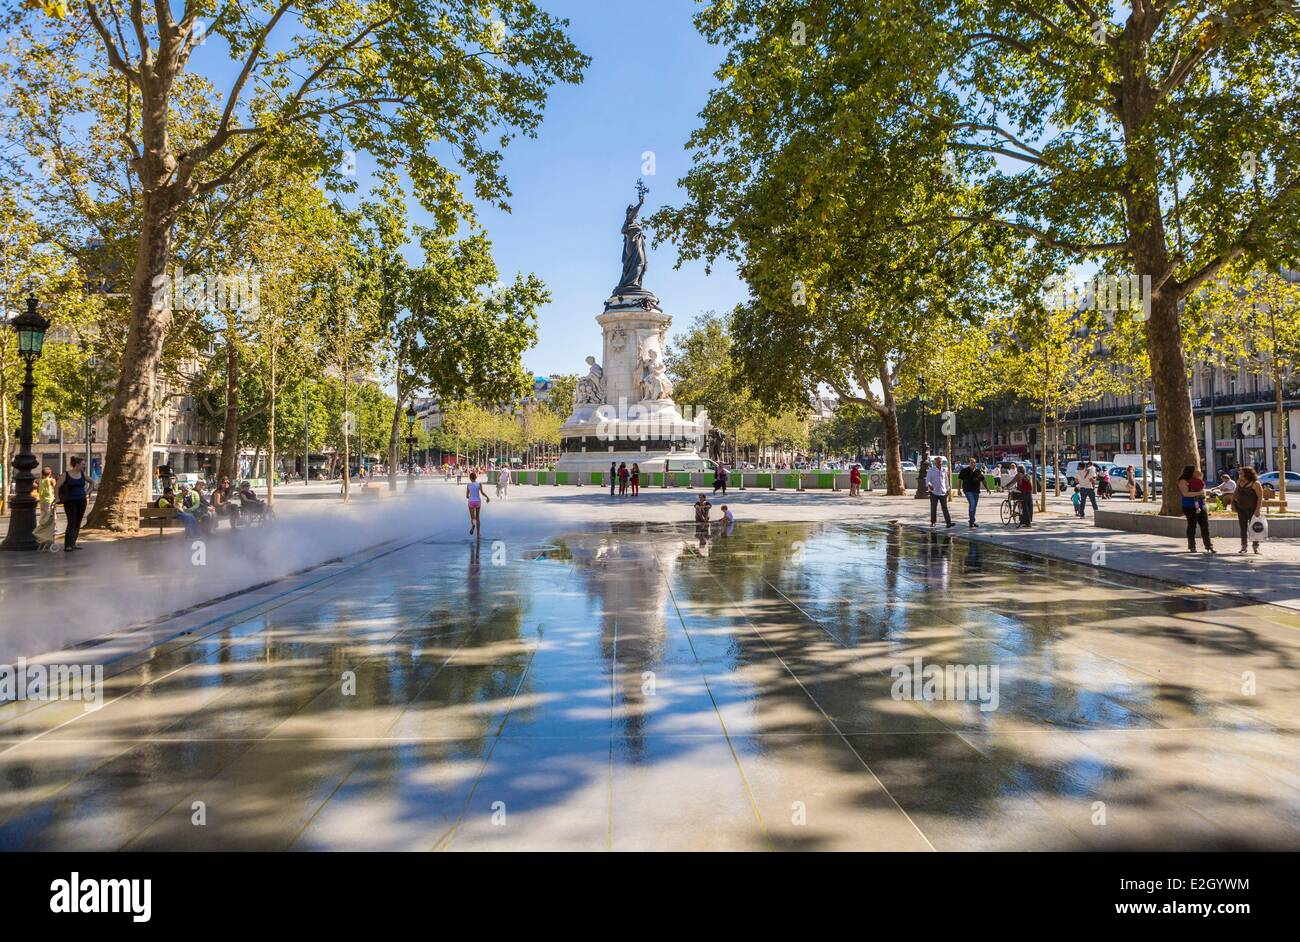 place de la republique stock photos place de la republique stock images alamy. Black Bedroom Furniture Sets. Home Design Ideas